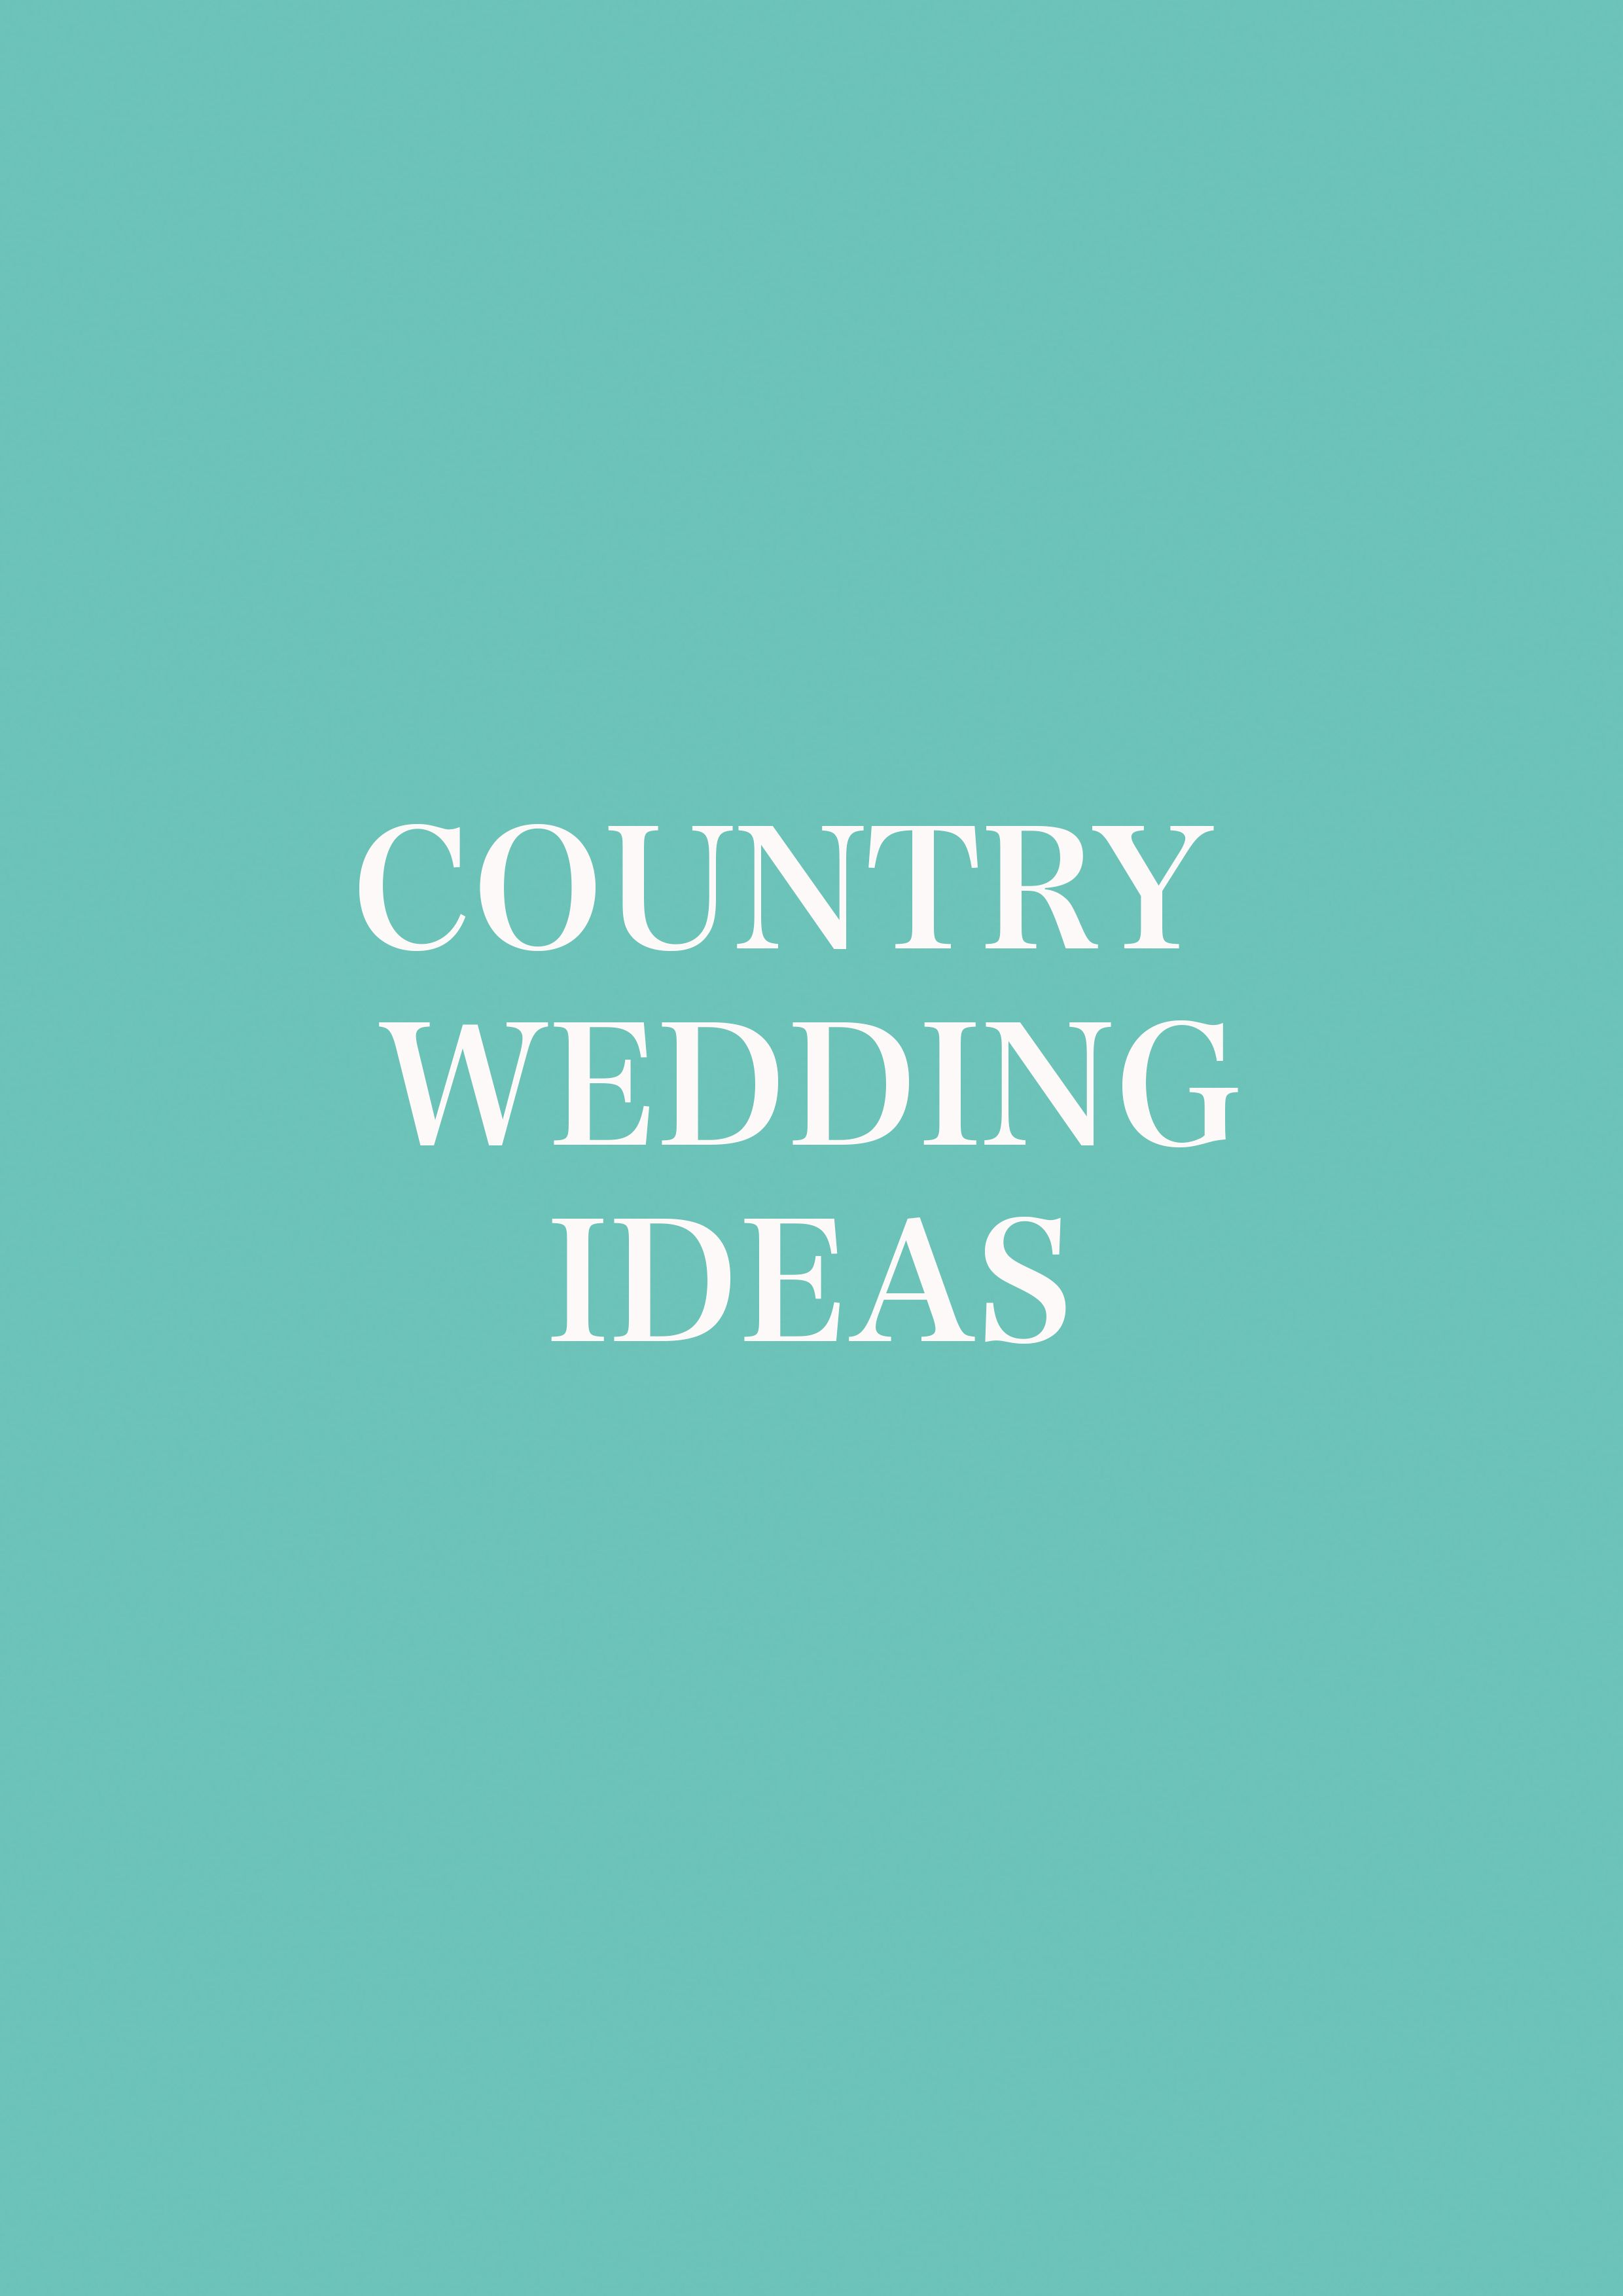 Pin by James & Kerrie Photography on Country wedding ideas